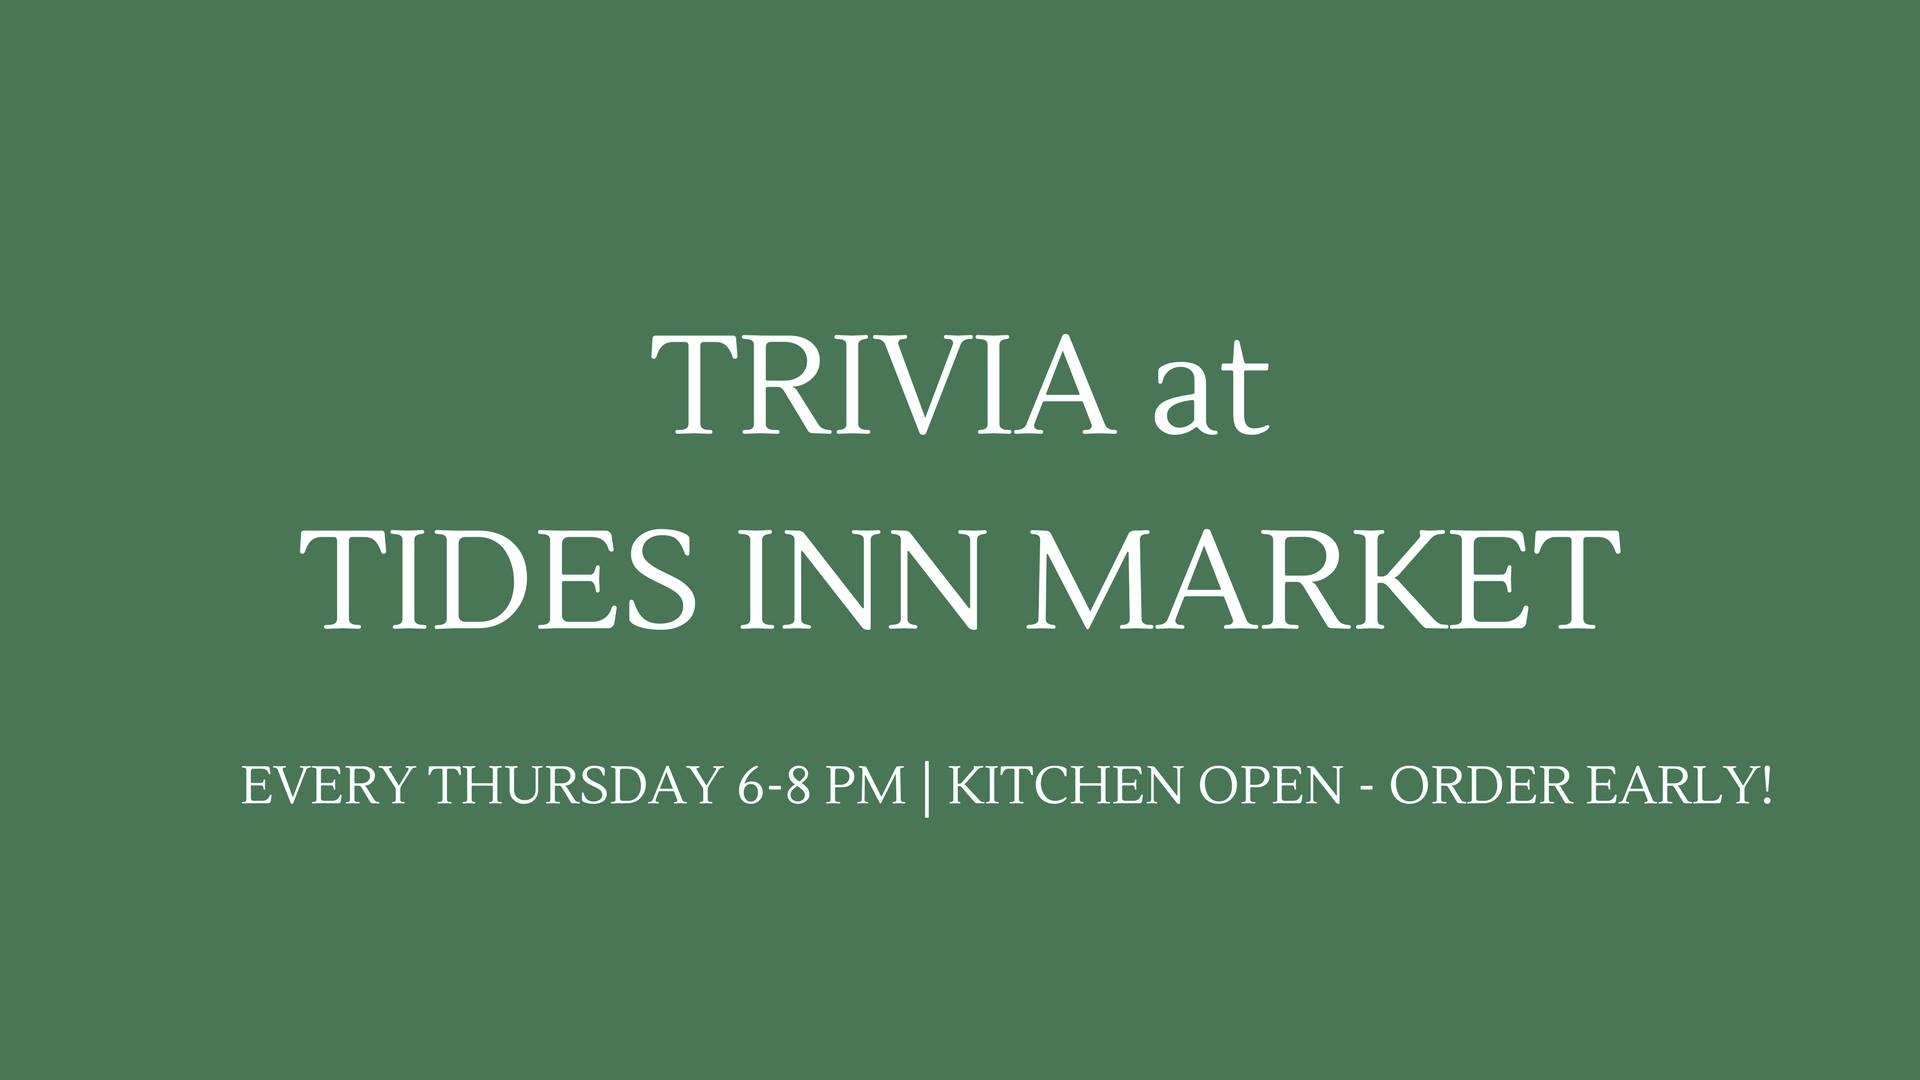 Thursday Trivia at Tides Inn